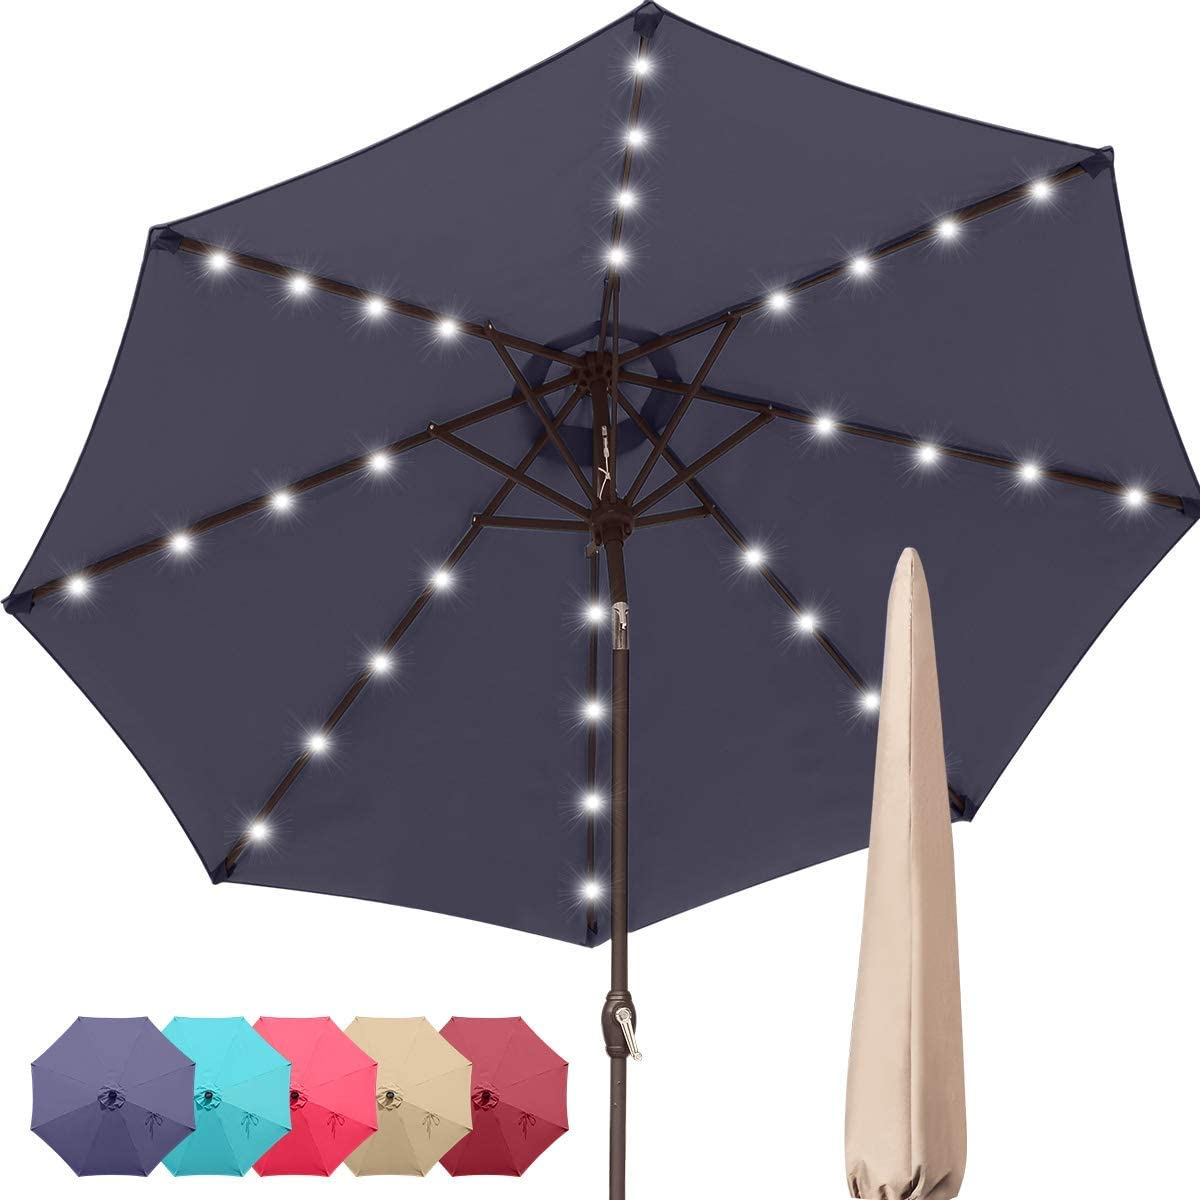 Quictent 9Ft Patio Umbrella 32 Solar LED Lighted Outdoor Garden Table Canopy Market Umbrella Pool Backyard with Ventilation 3 Years Non-Fading Top 8 Ribs 240G Yarn-Dyed Fabric (Navy Blue)…